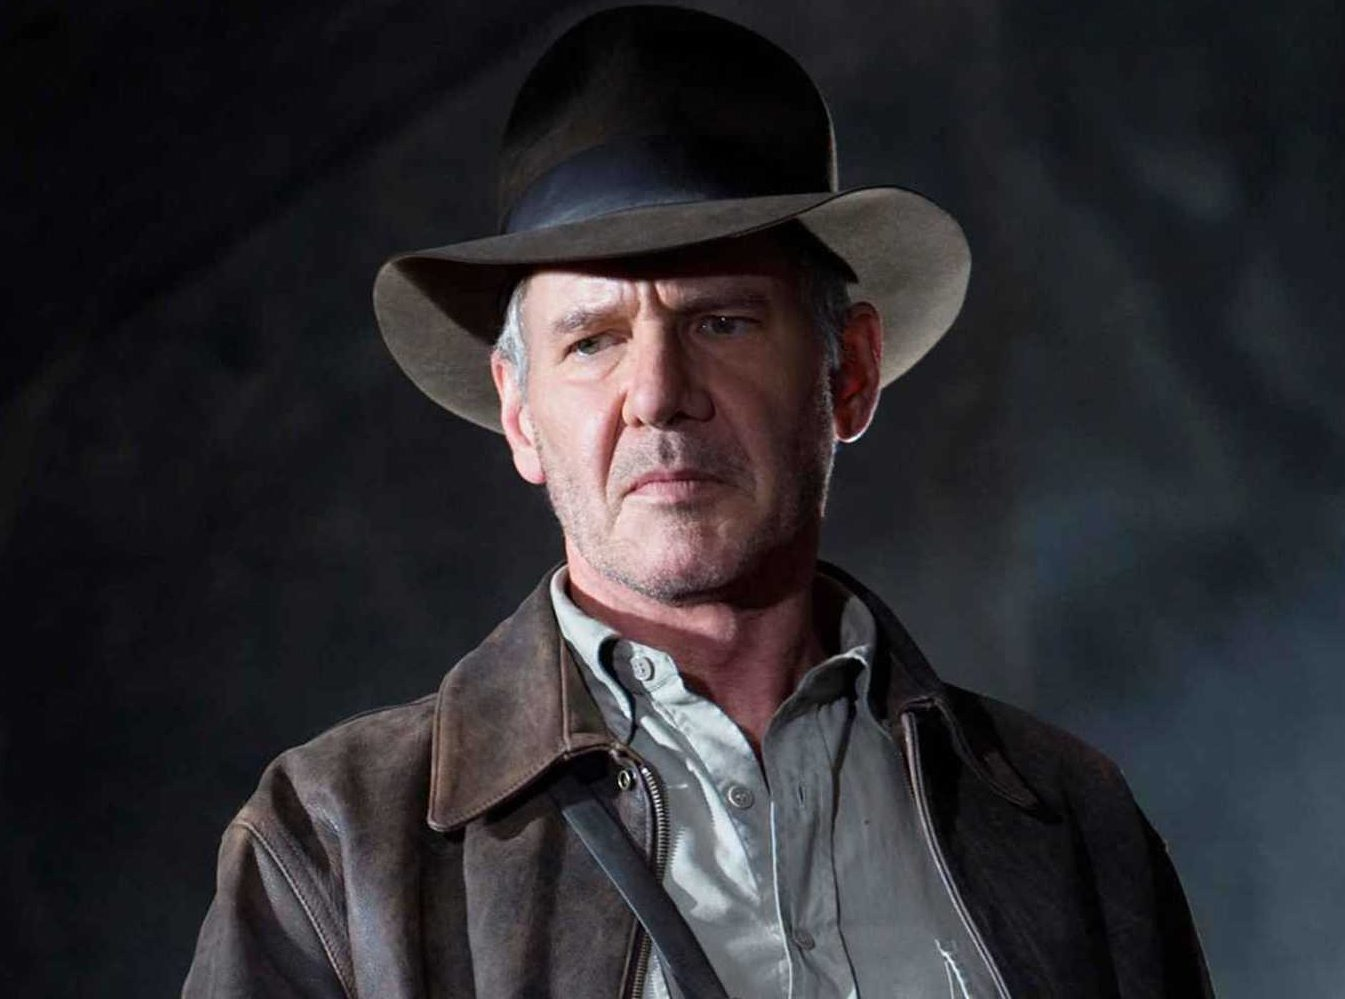 indiana jones e1623140472358 Indiana Jones 5: Harrison Ford Spotted In Costume As Film Shoot Begins